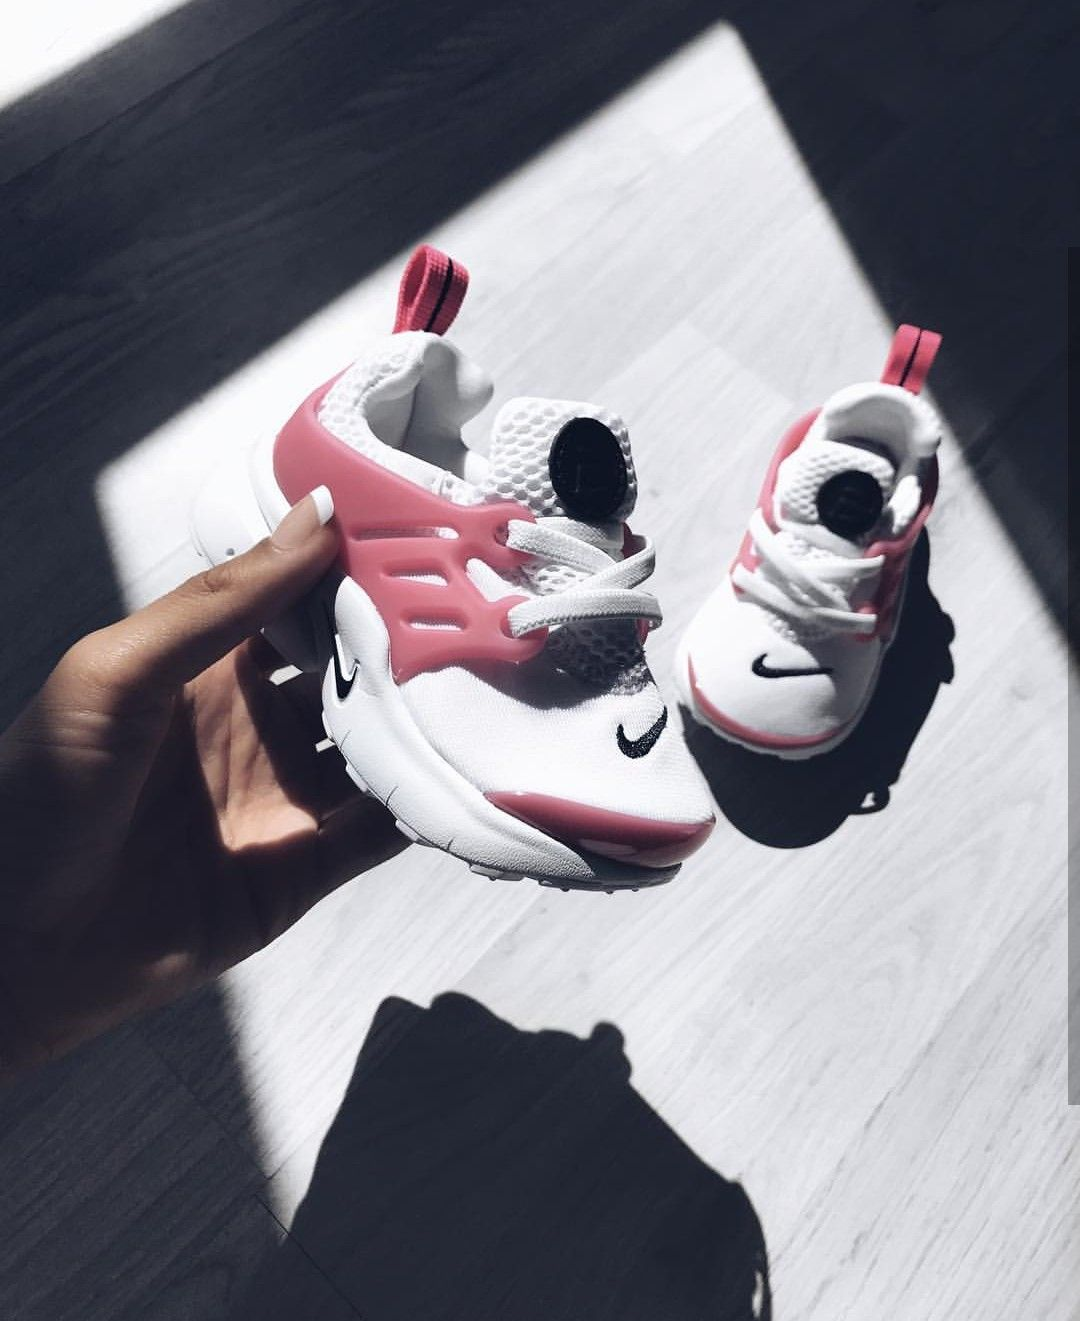 casual shoes skate shoes on feet at Nike Air Mini prestos für babys in white pink/weiß rosa ...